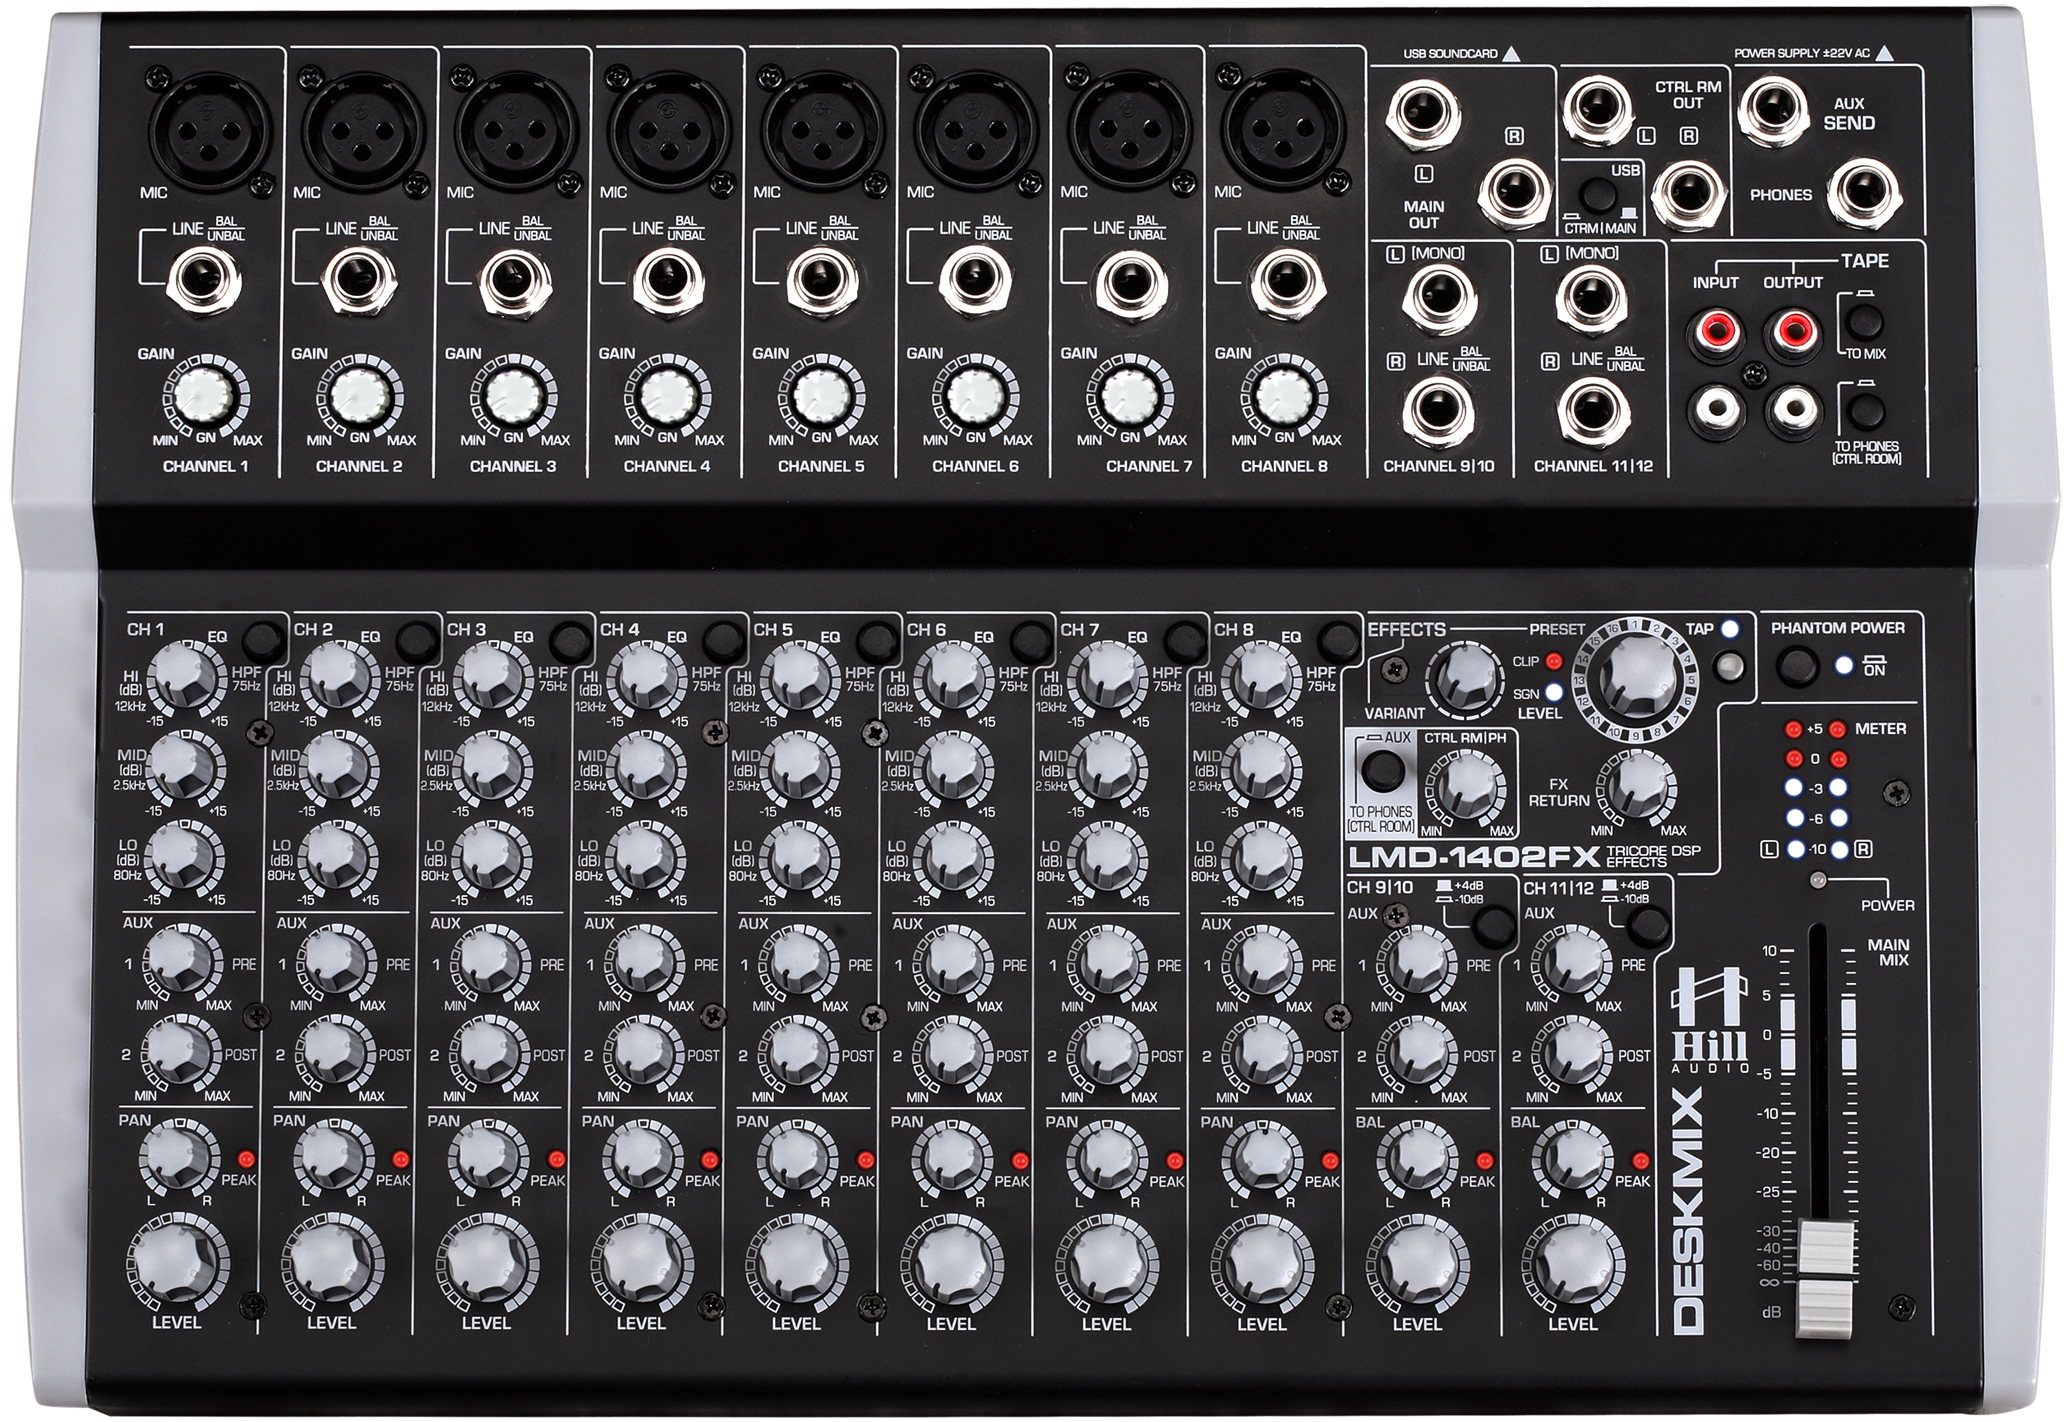 Hill Audio LMD1402FX 10 Channel Stage Mixer